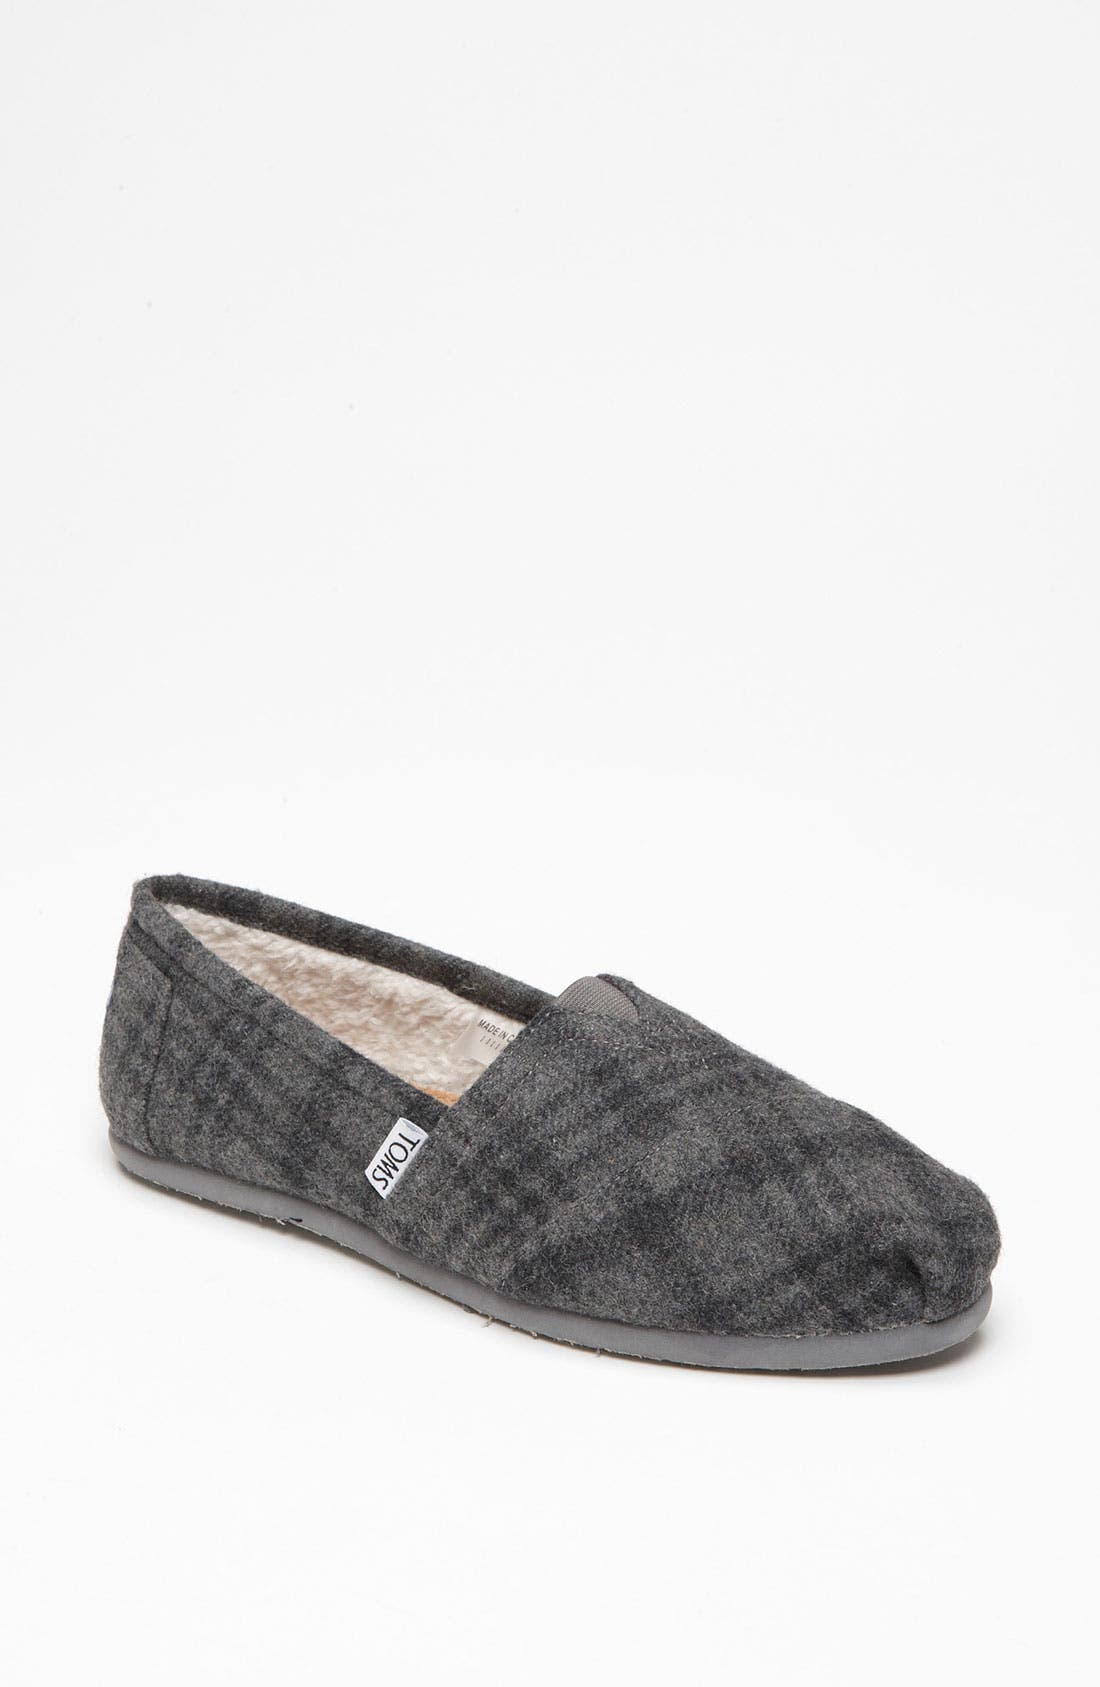 Alternate Image 1 Selected - TOMS 'Classic - Bray' Slip-On